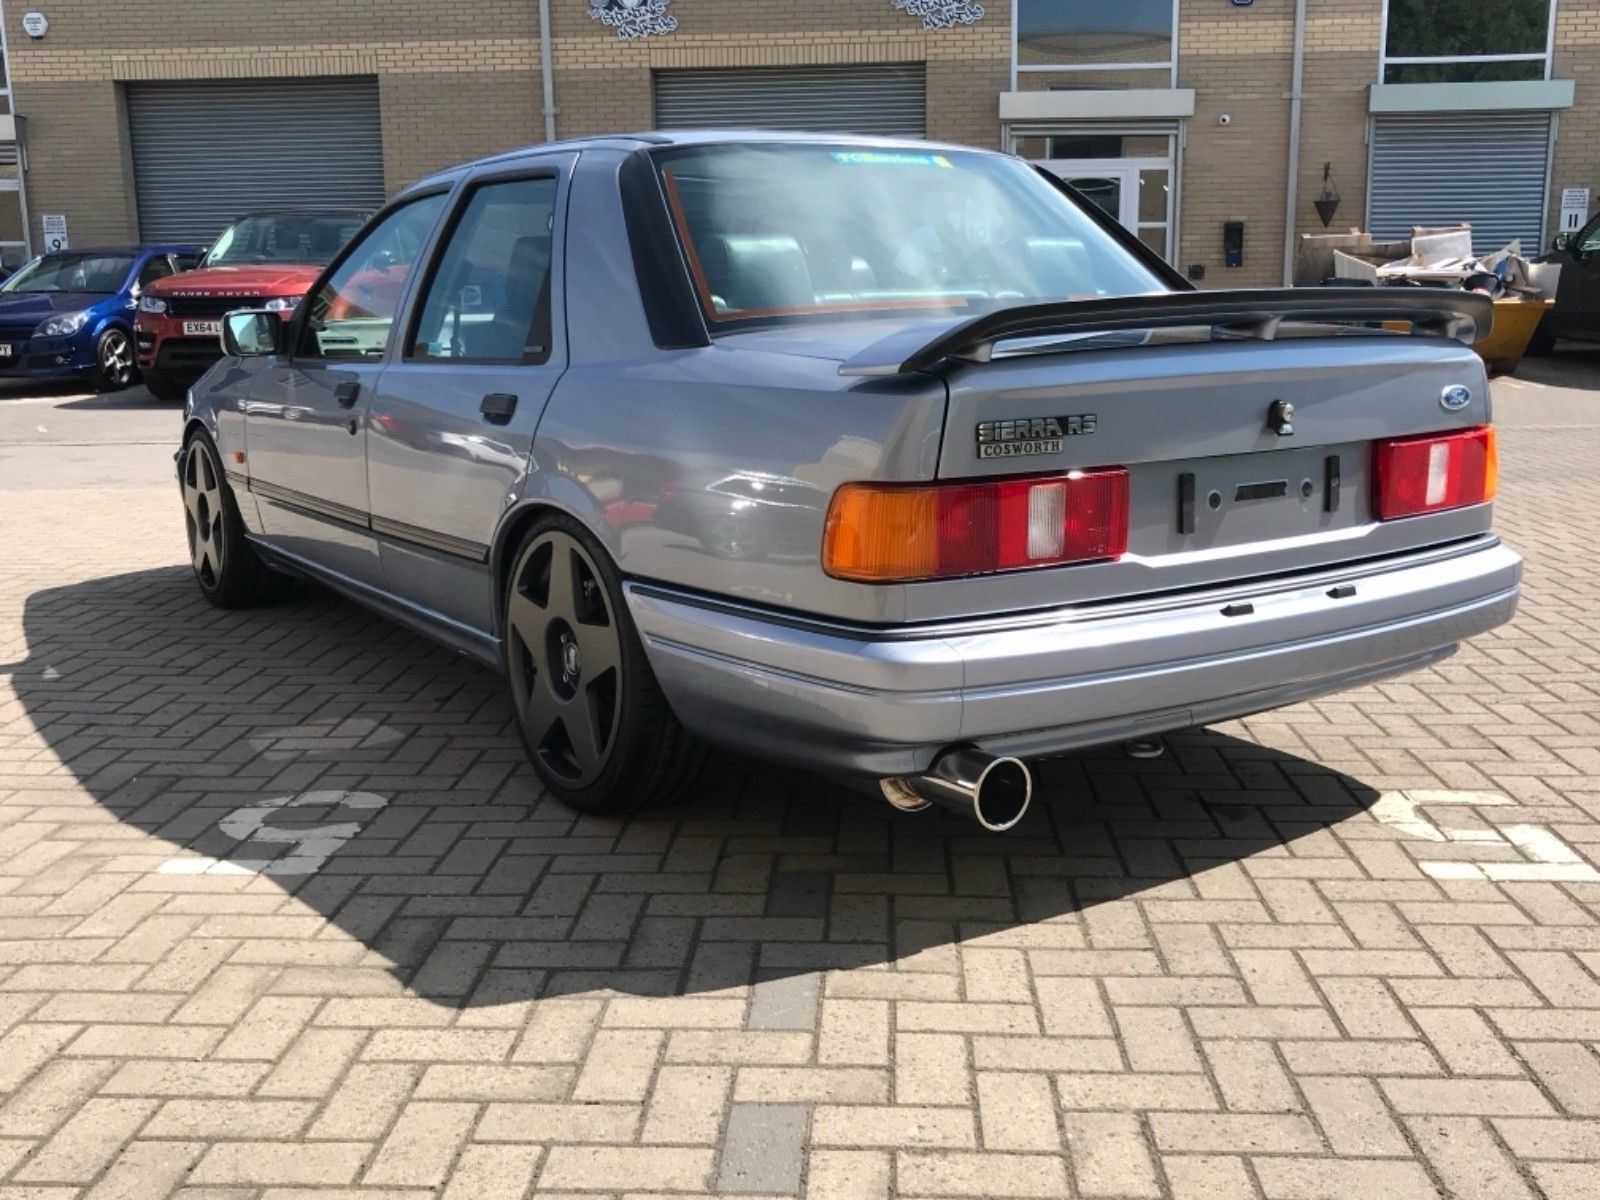 Ford Sierra Rs Cosworth Concourse Low Mileage Ford Sierra Classic Cars British Ford